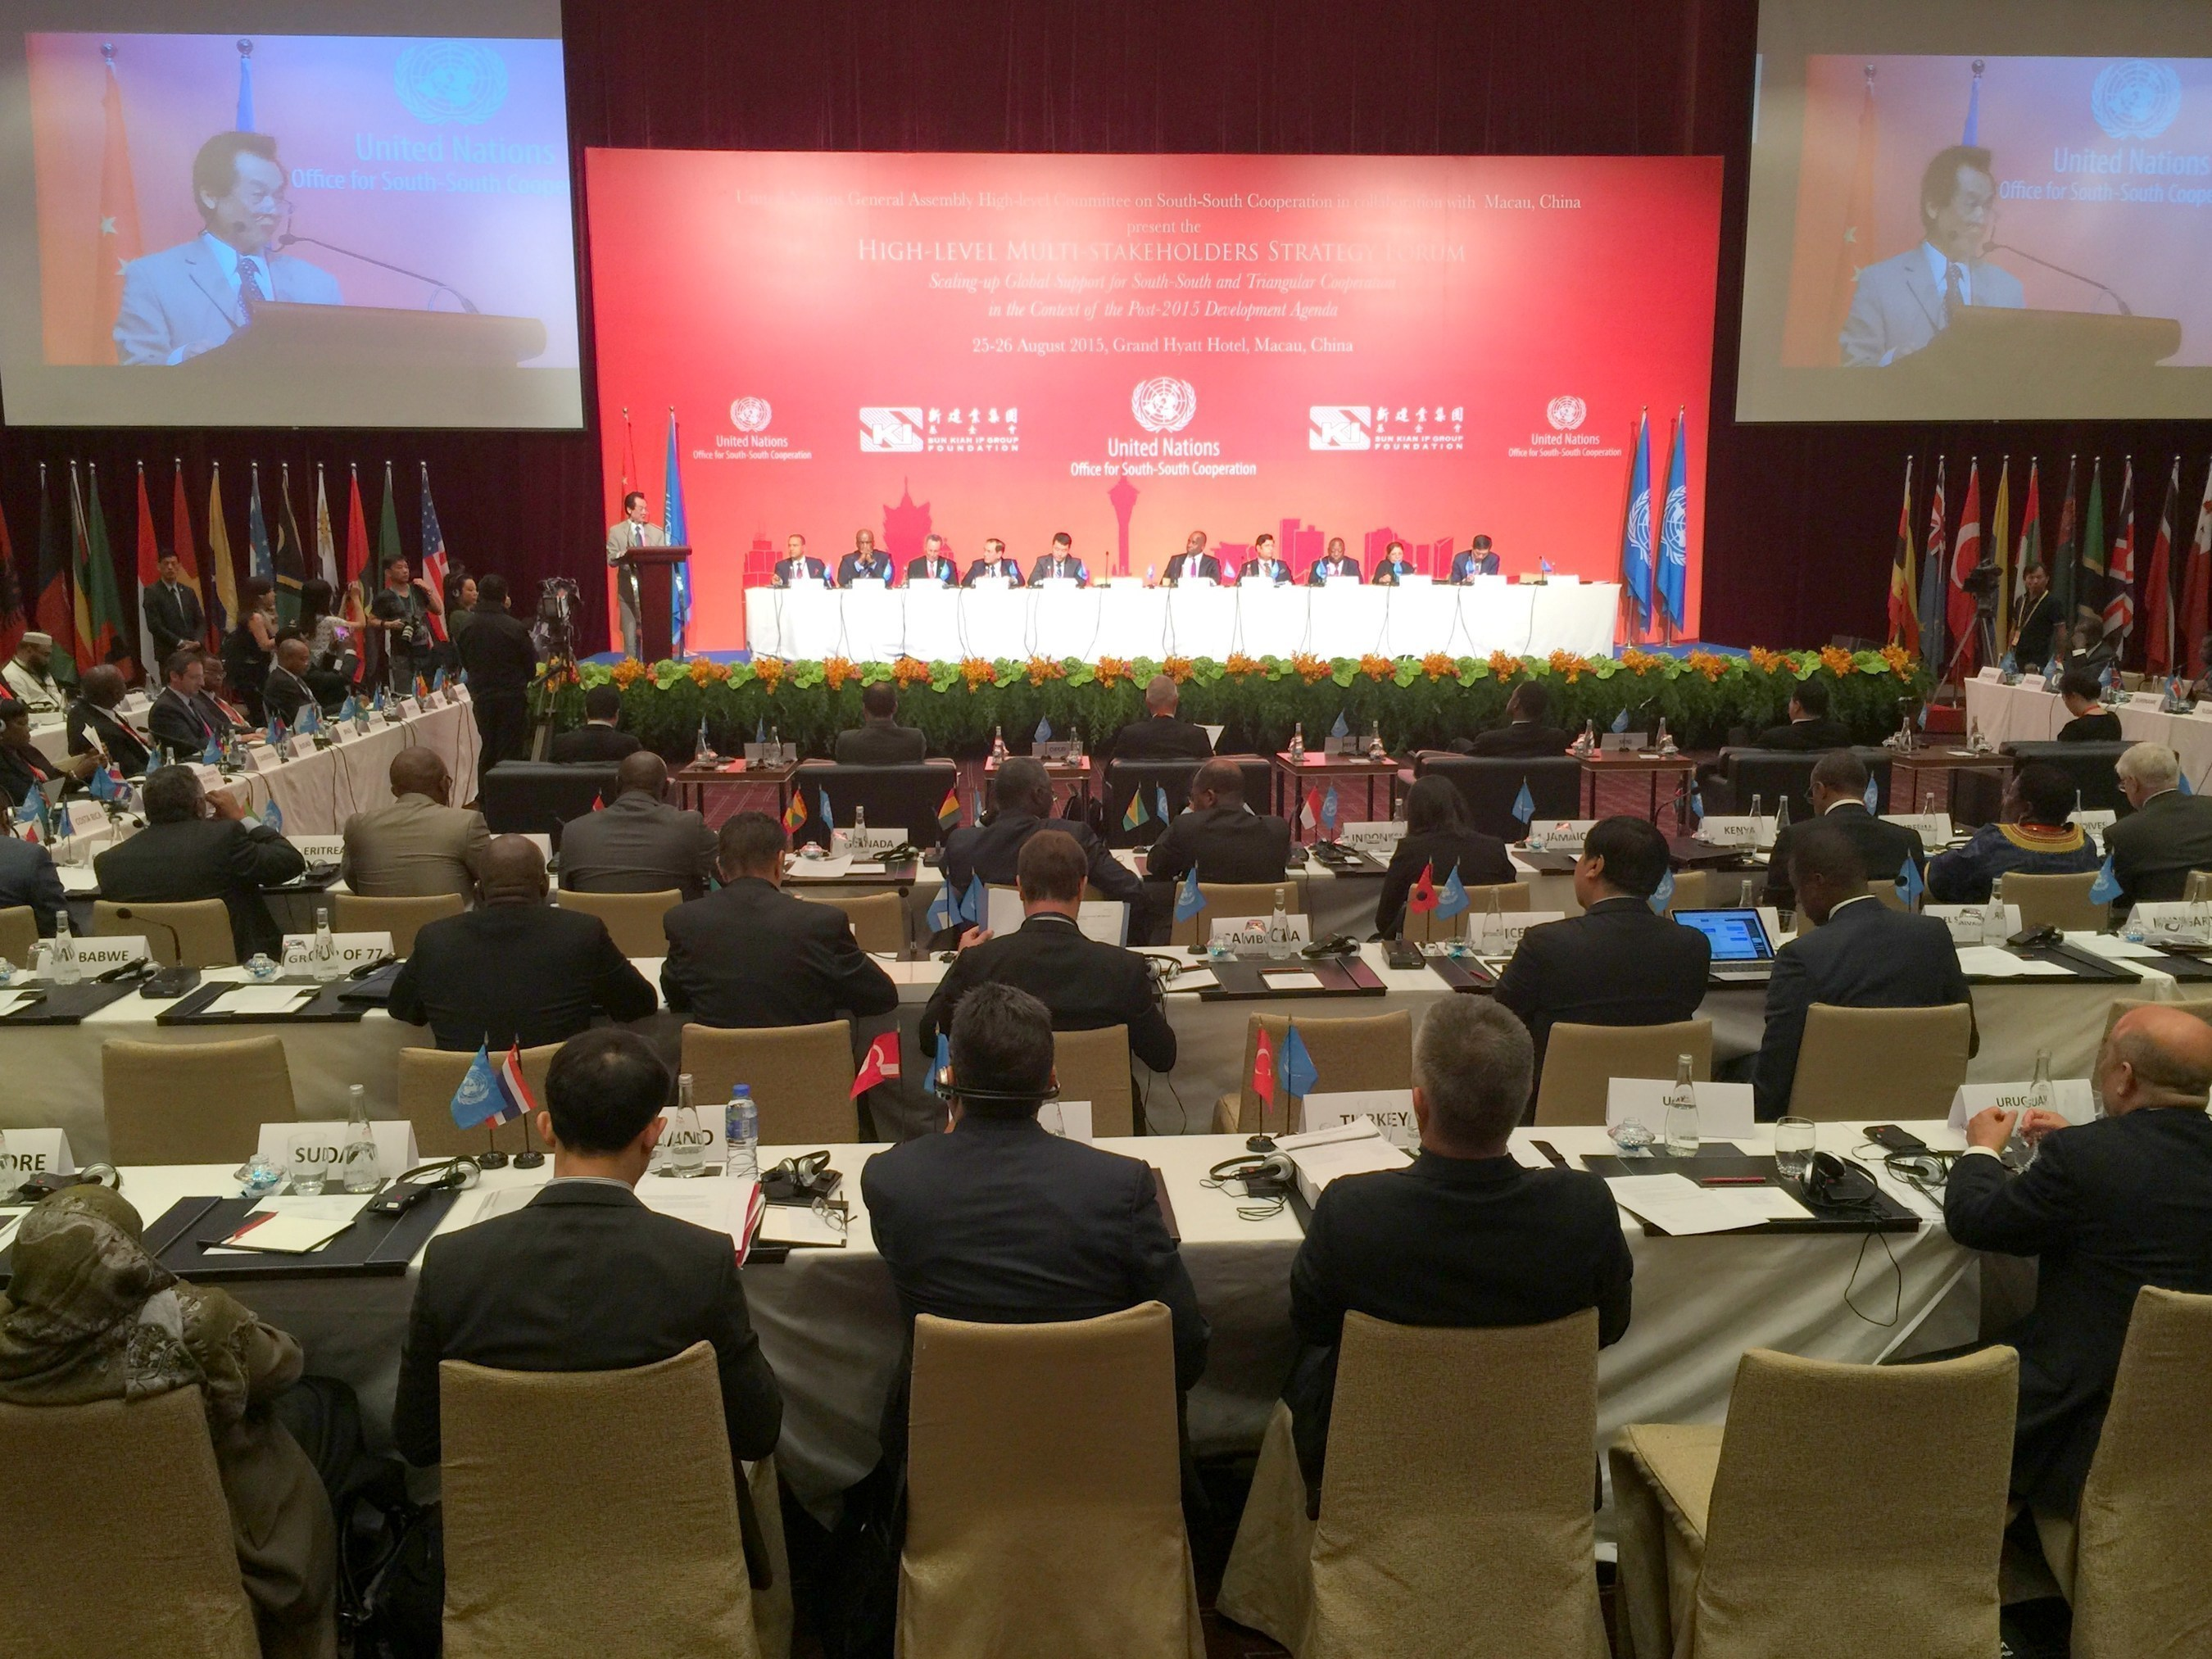 Yiping Zhou, Director of the United Nations Office for South-South Cooperation, speaks at the opening of the High-Level Multi-Stakeholders Strategy Forum in Macau, China.